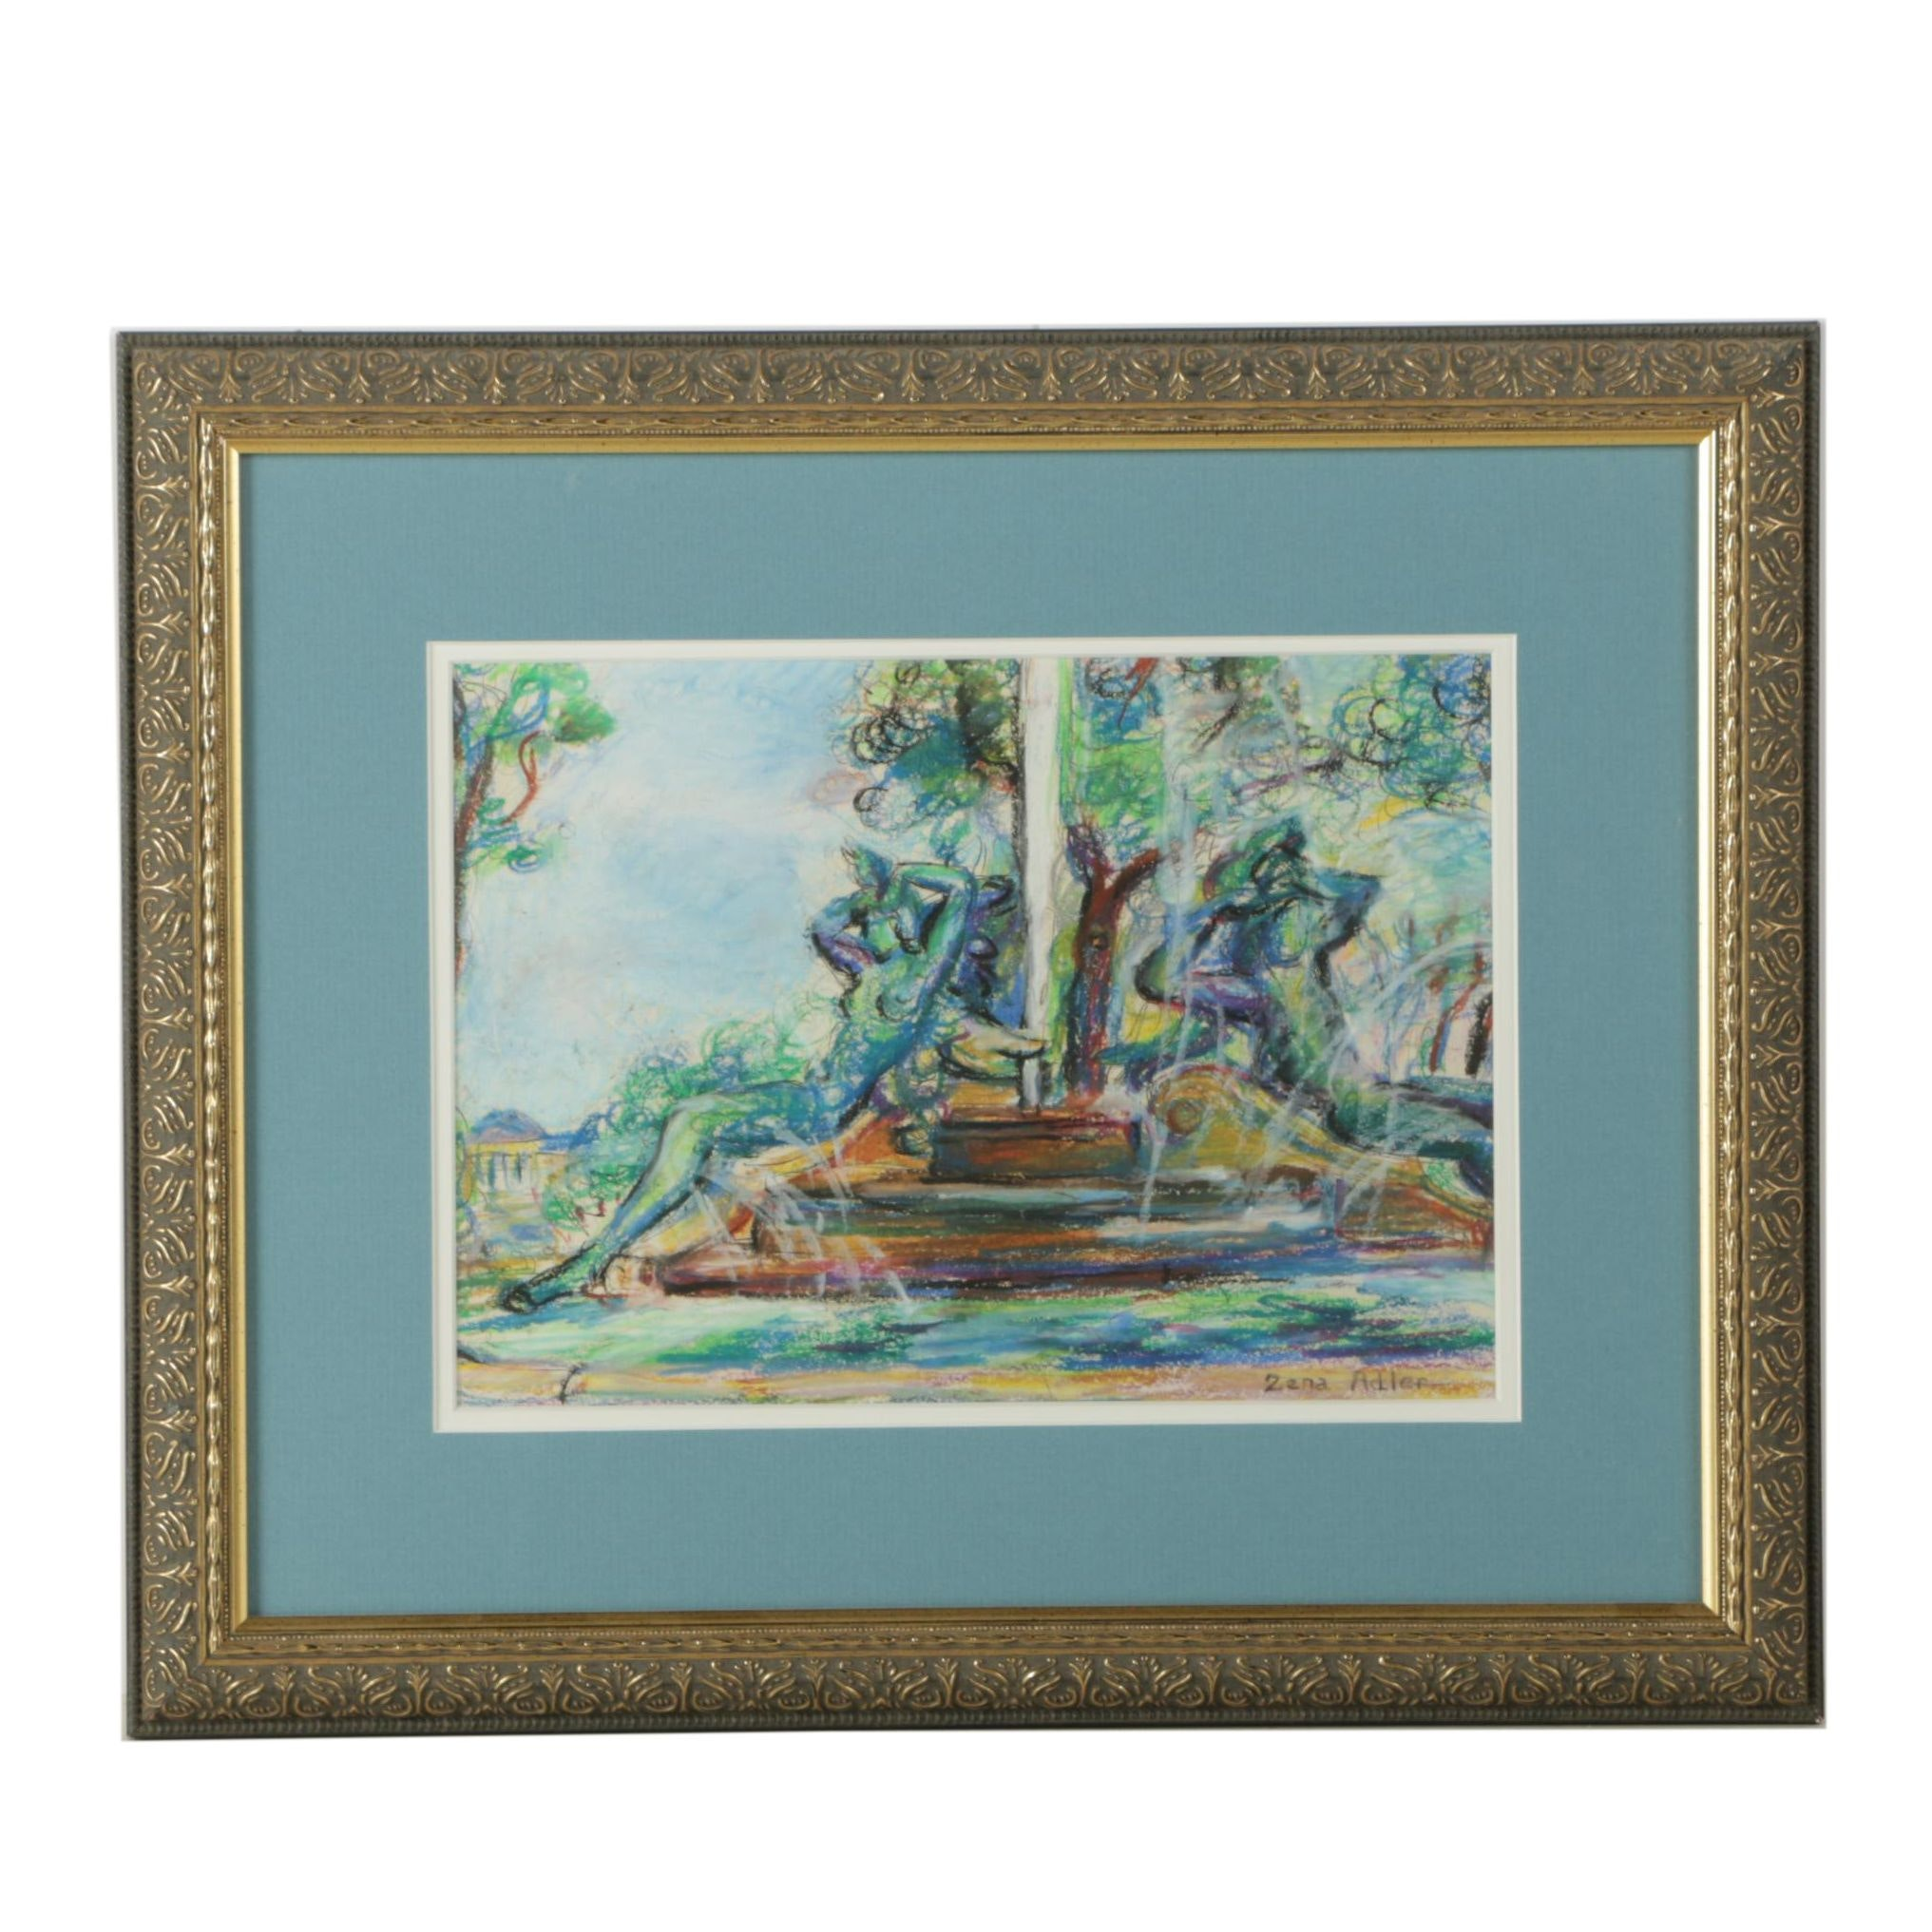 Zena Adler Pastel Drawing on Paper of Fountain